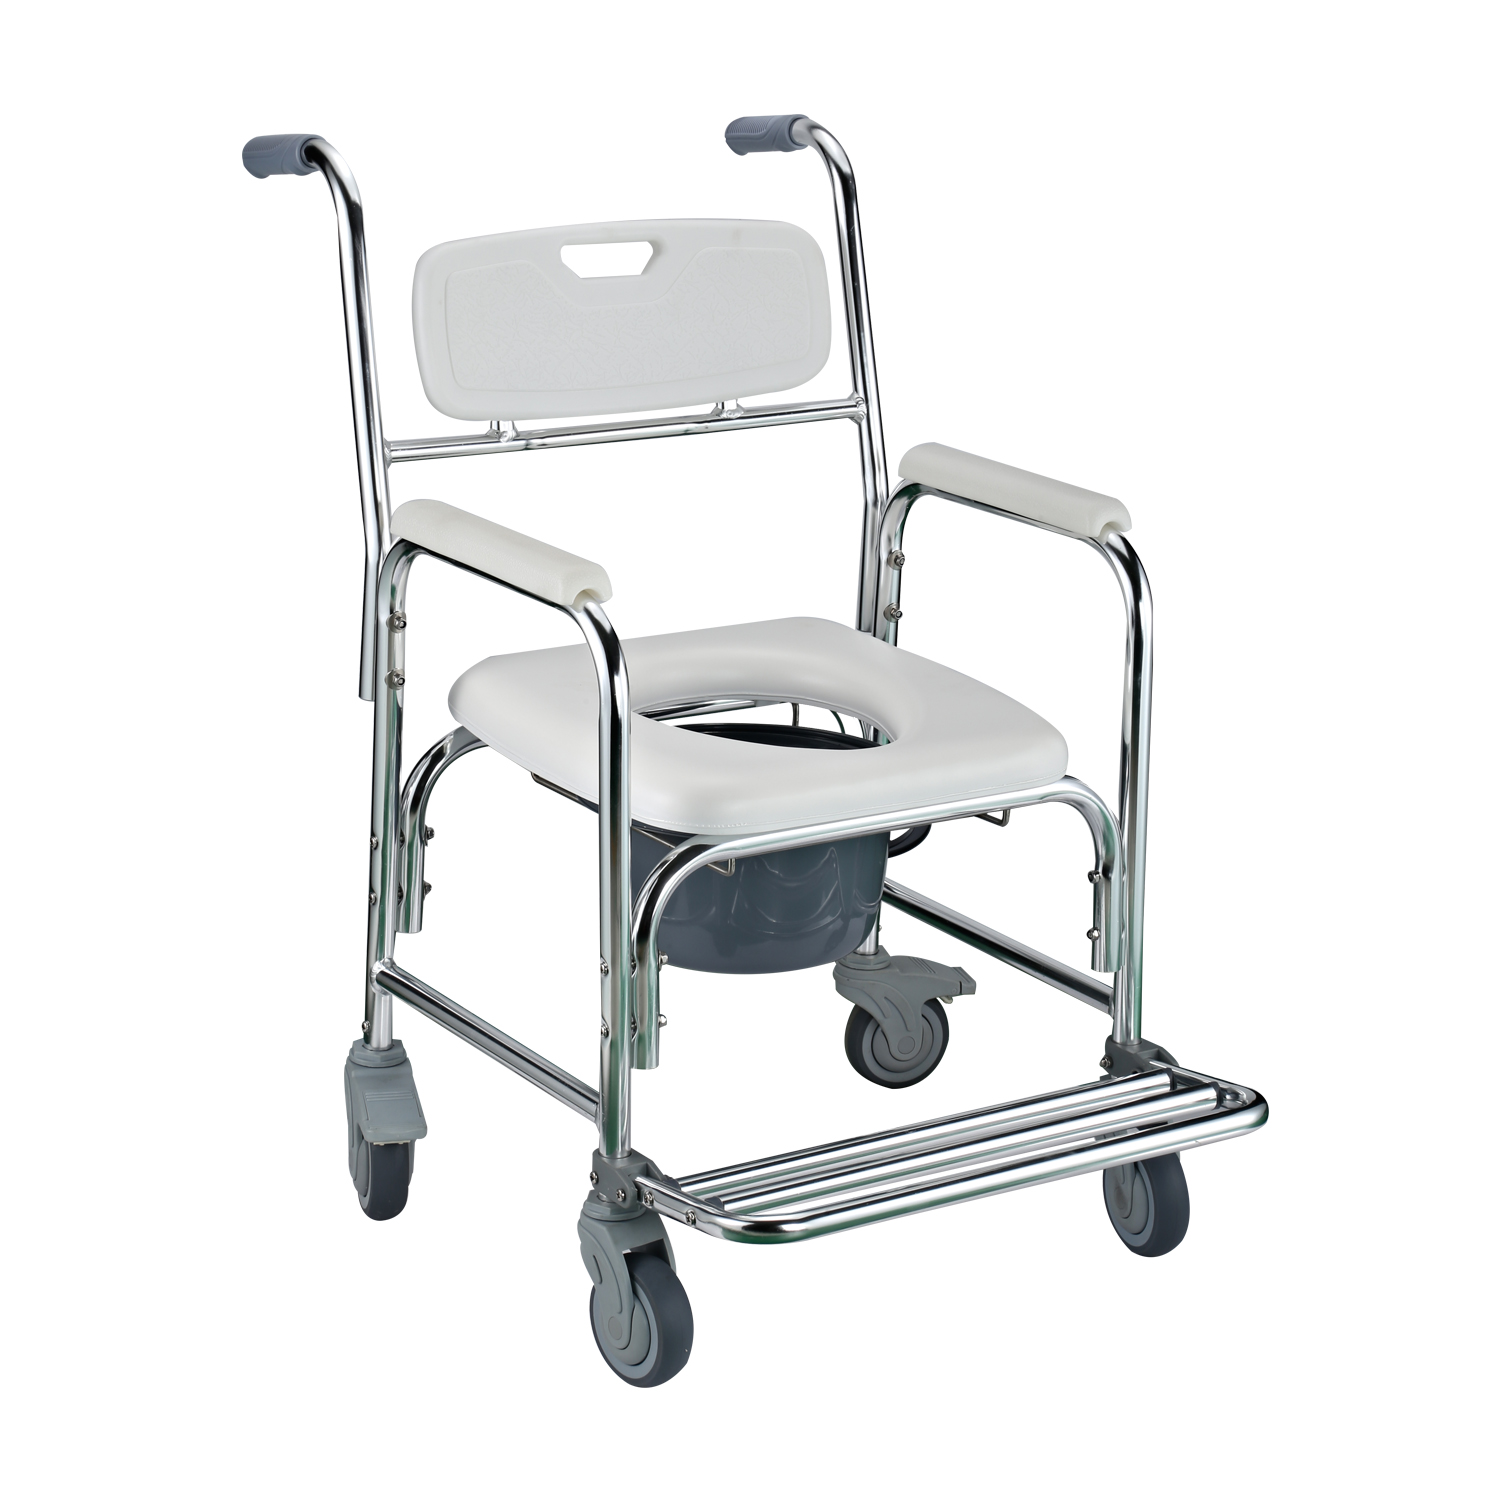 Bedside Commode Chair Commode Transport Wheelchair Bedside Toilet Bucket W 4